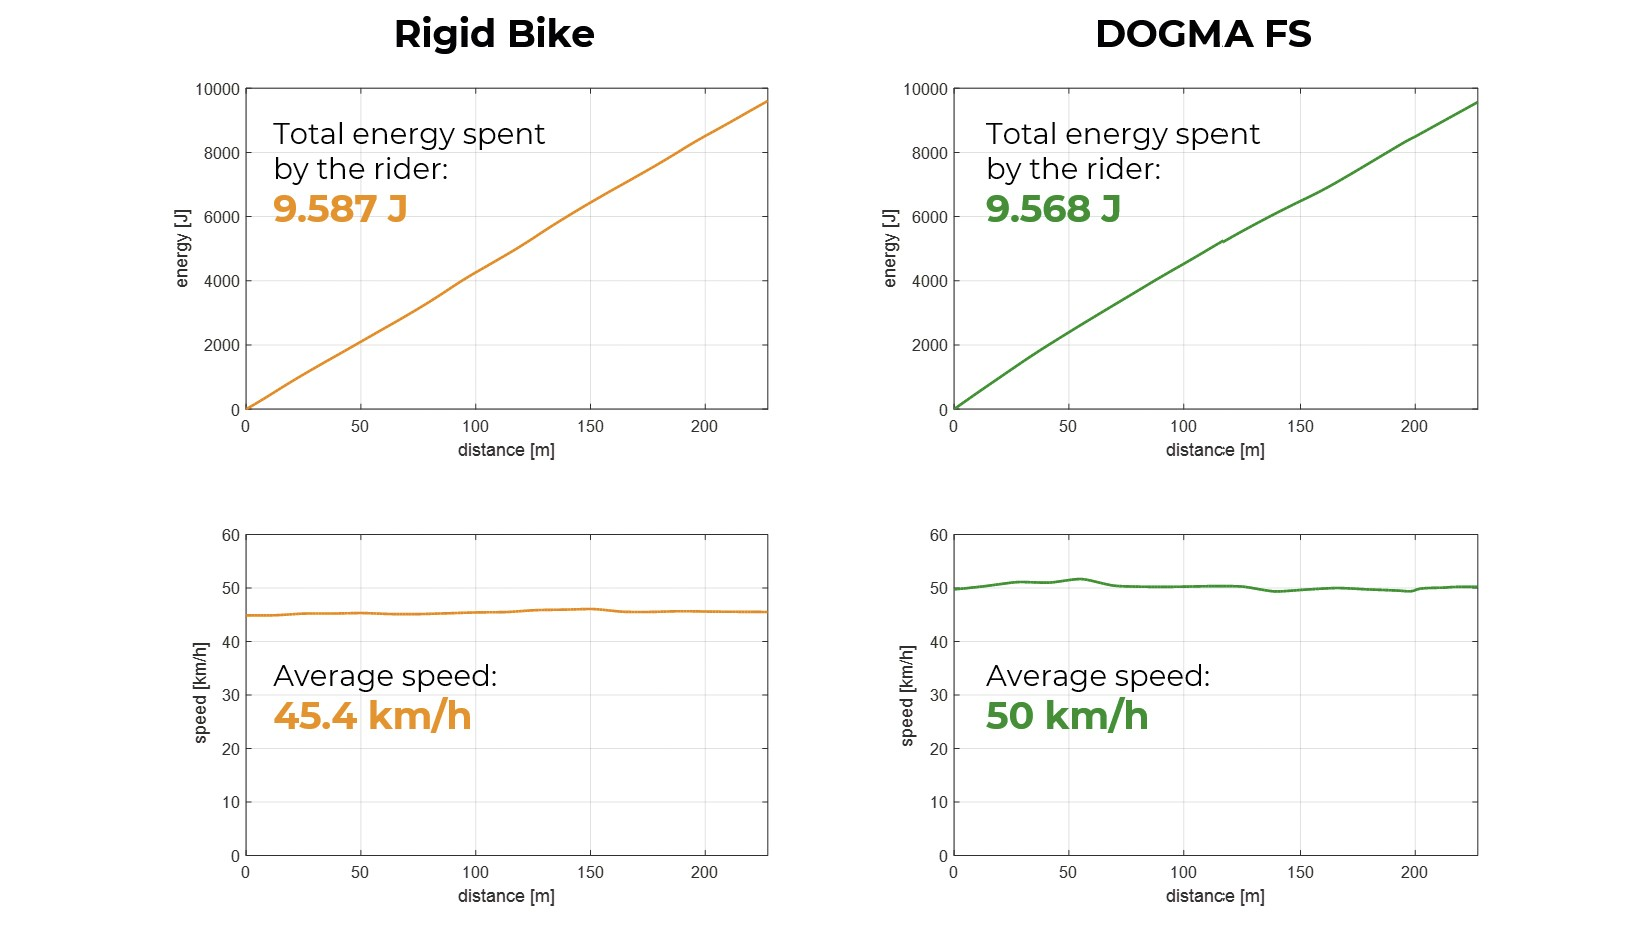 The bike is claimed to be 15 seconds faster than an undefined rigid bike along the Carrefour de l'Arbre